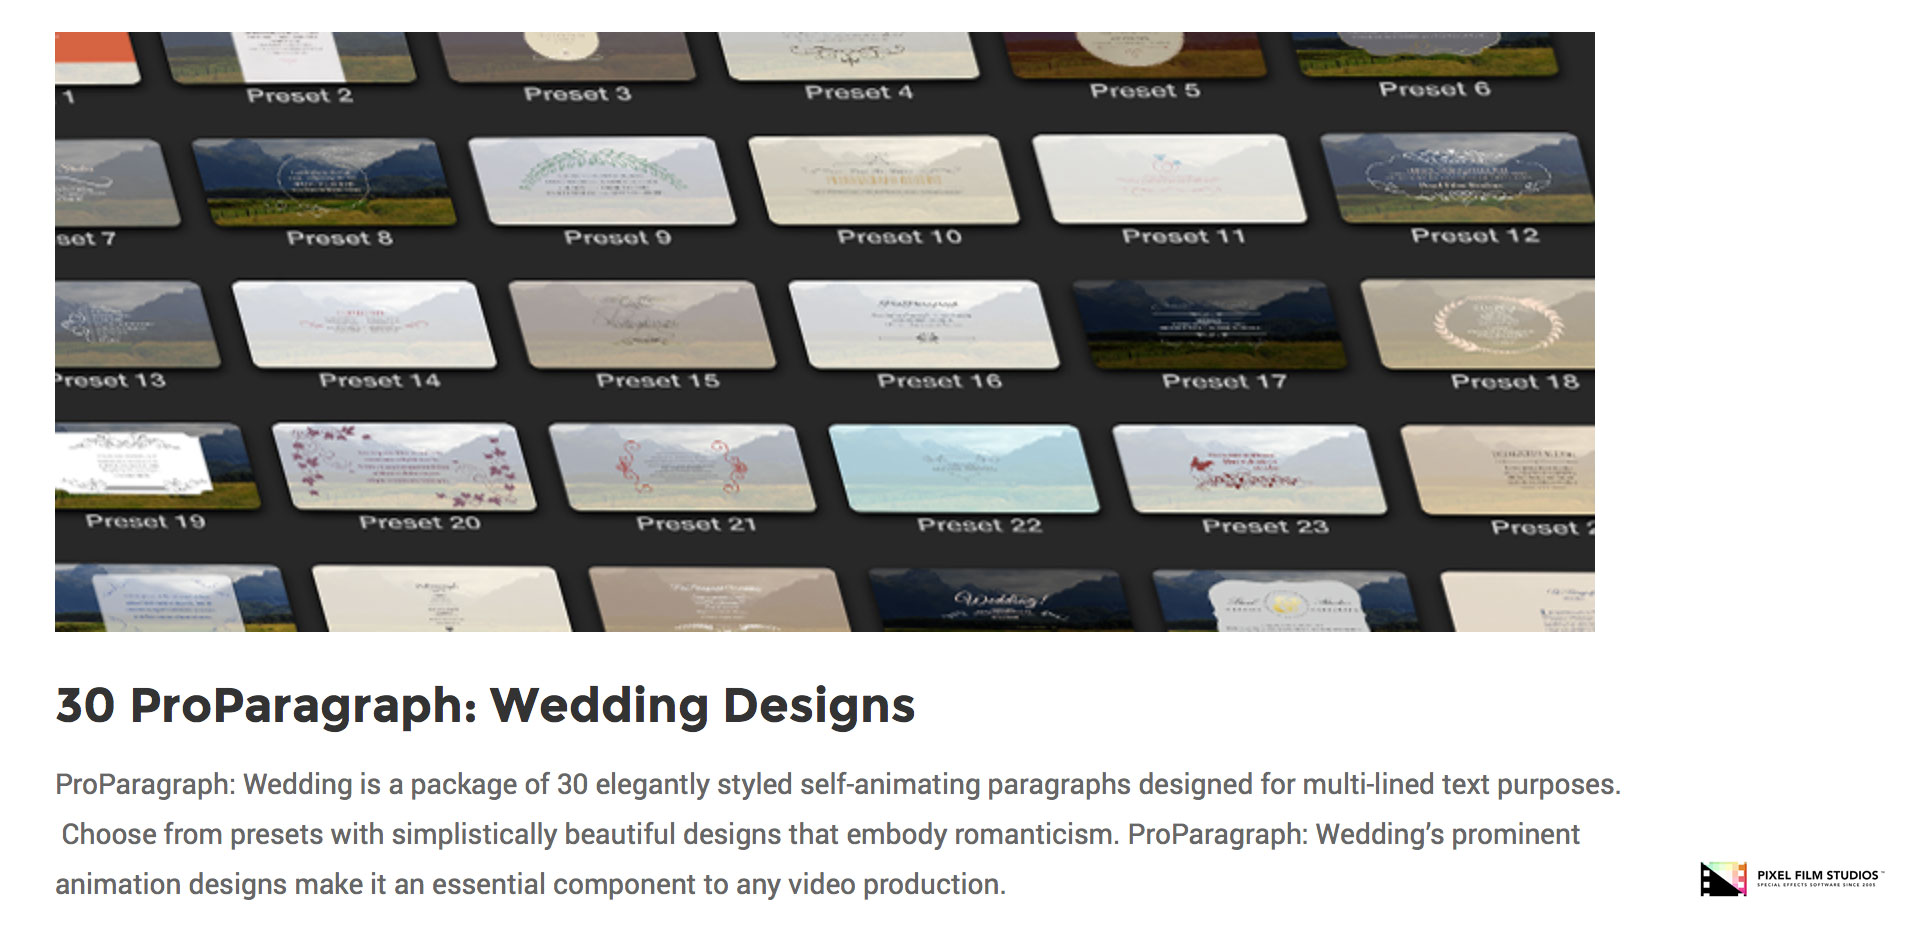 pixel film studios set to release proparagraph wedding for